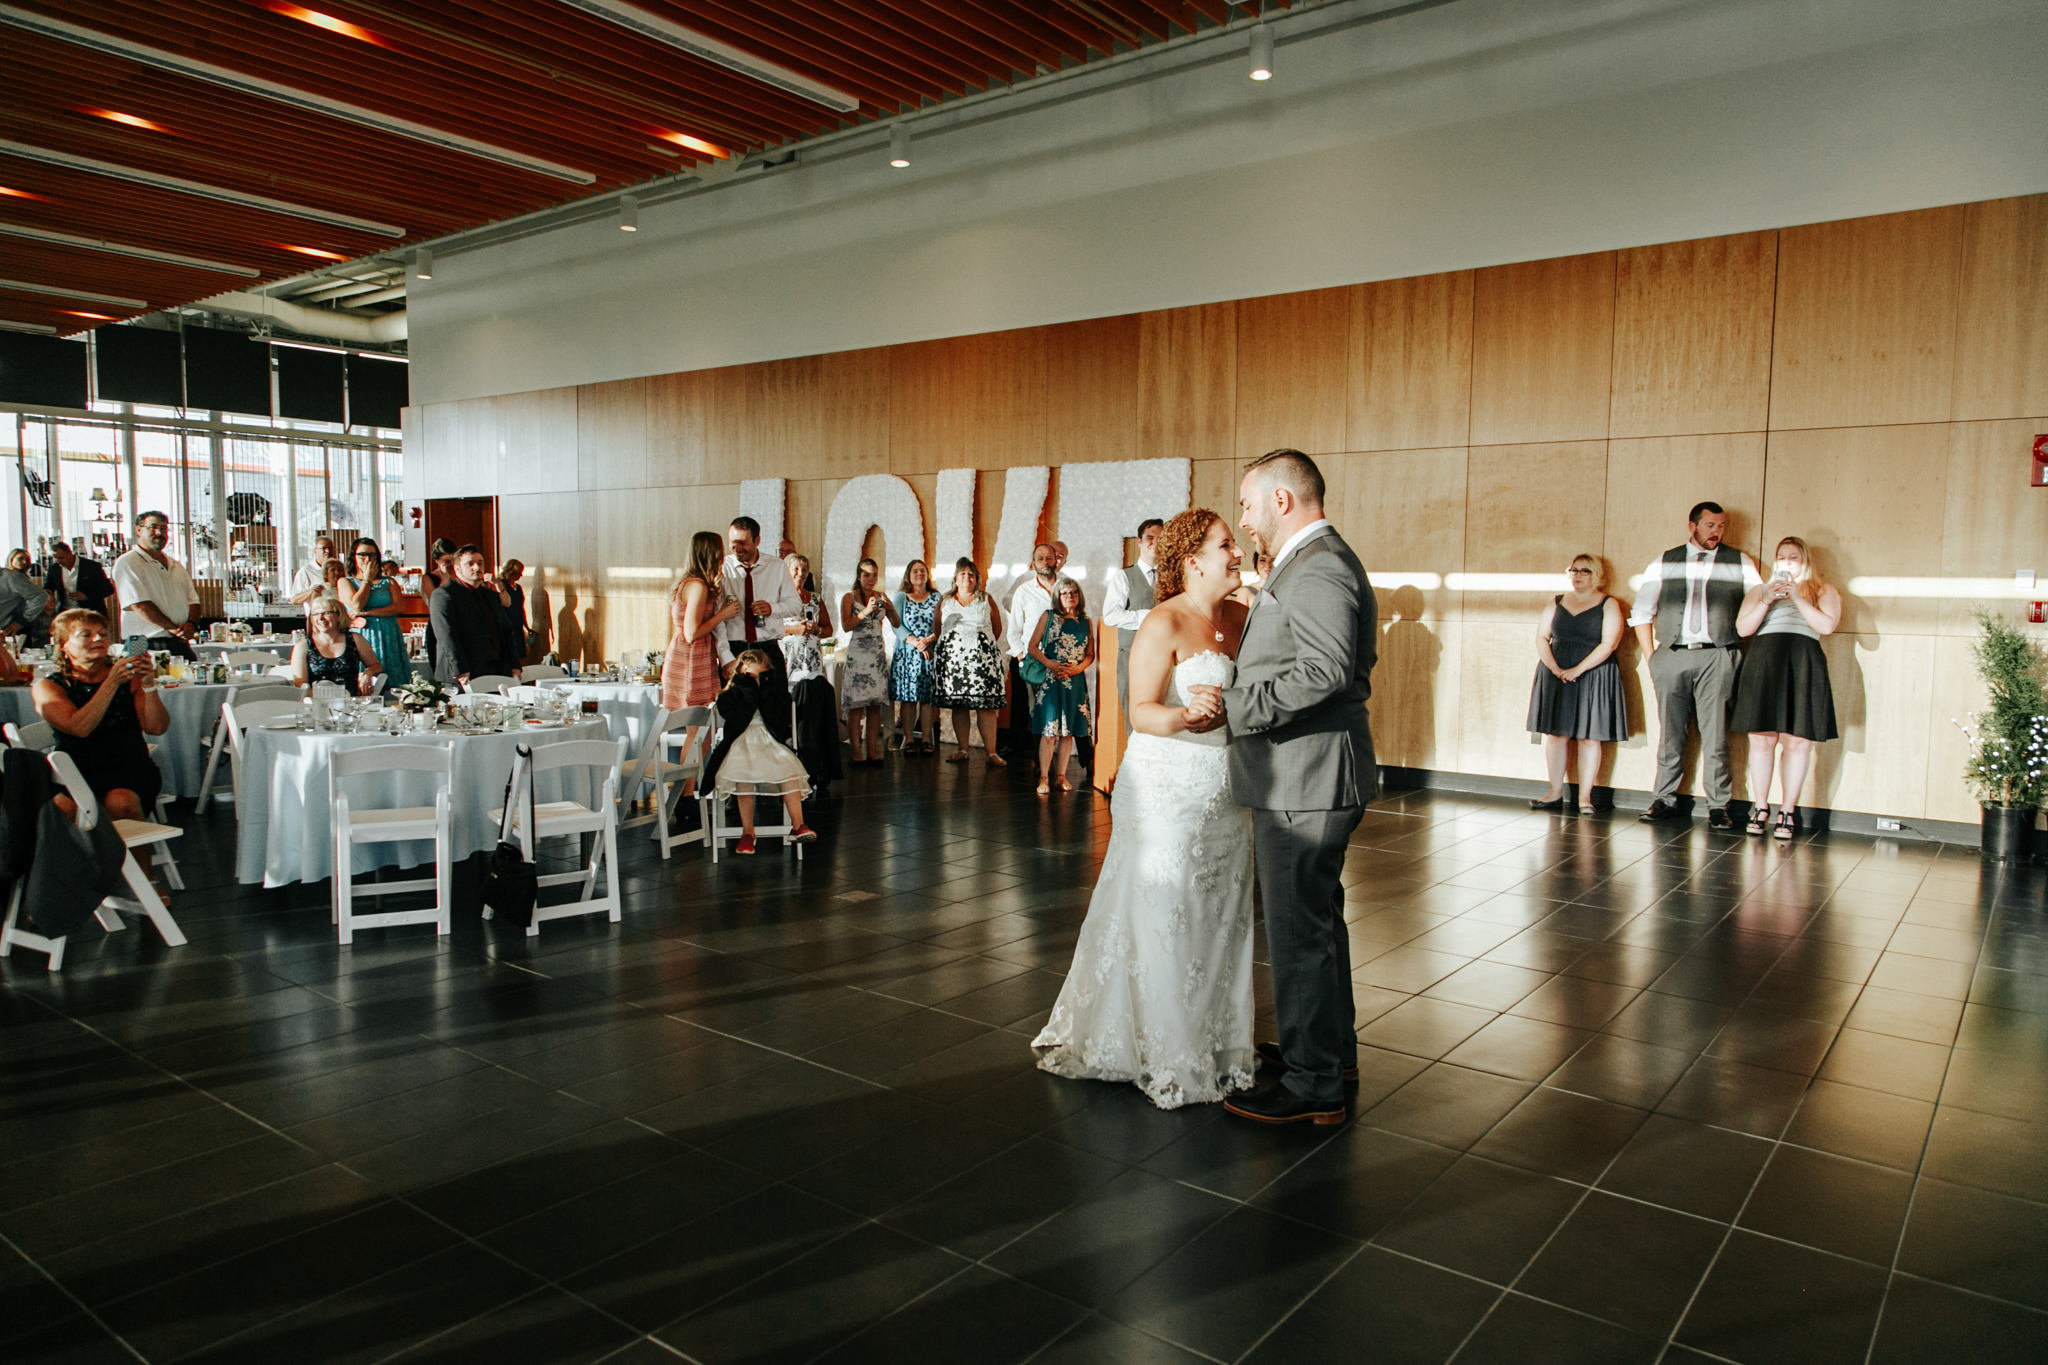 lethbridge-wedding-photographer-love-and-be-loved-photography-trent-danielle-galt-reception-picture-image-photo-203.jpg